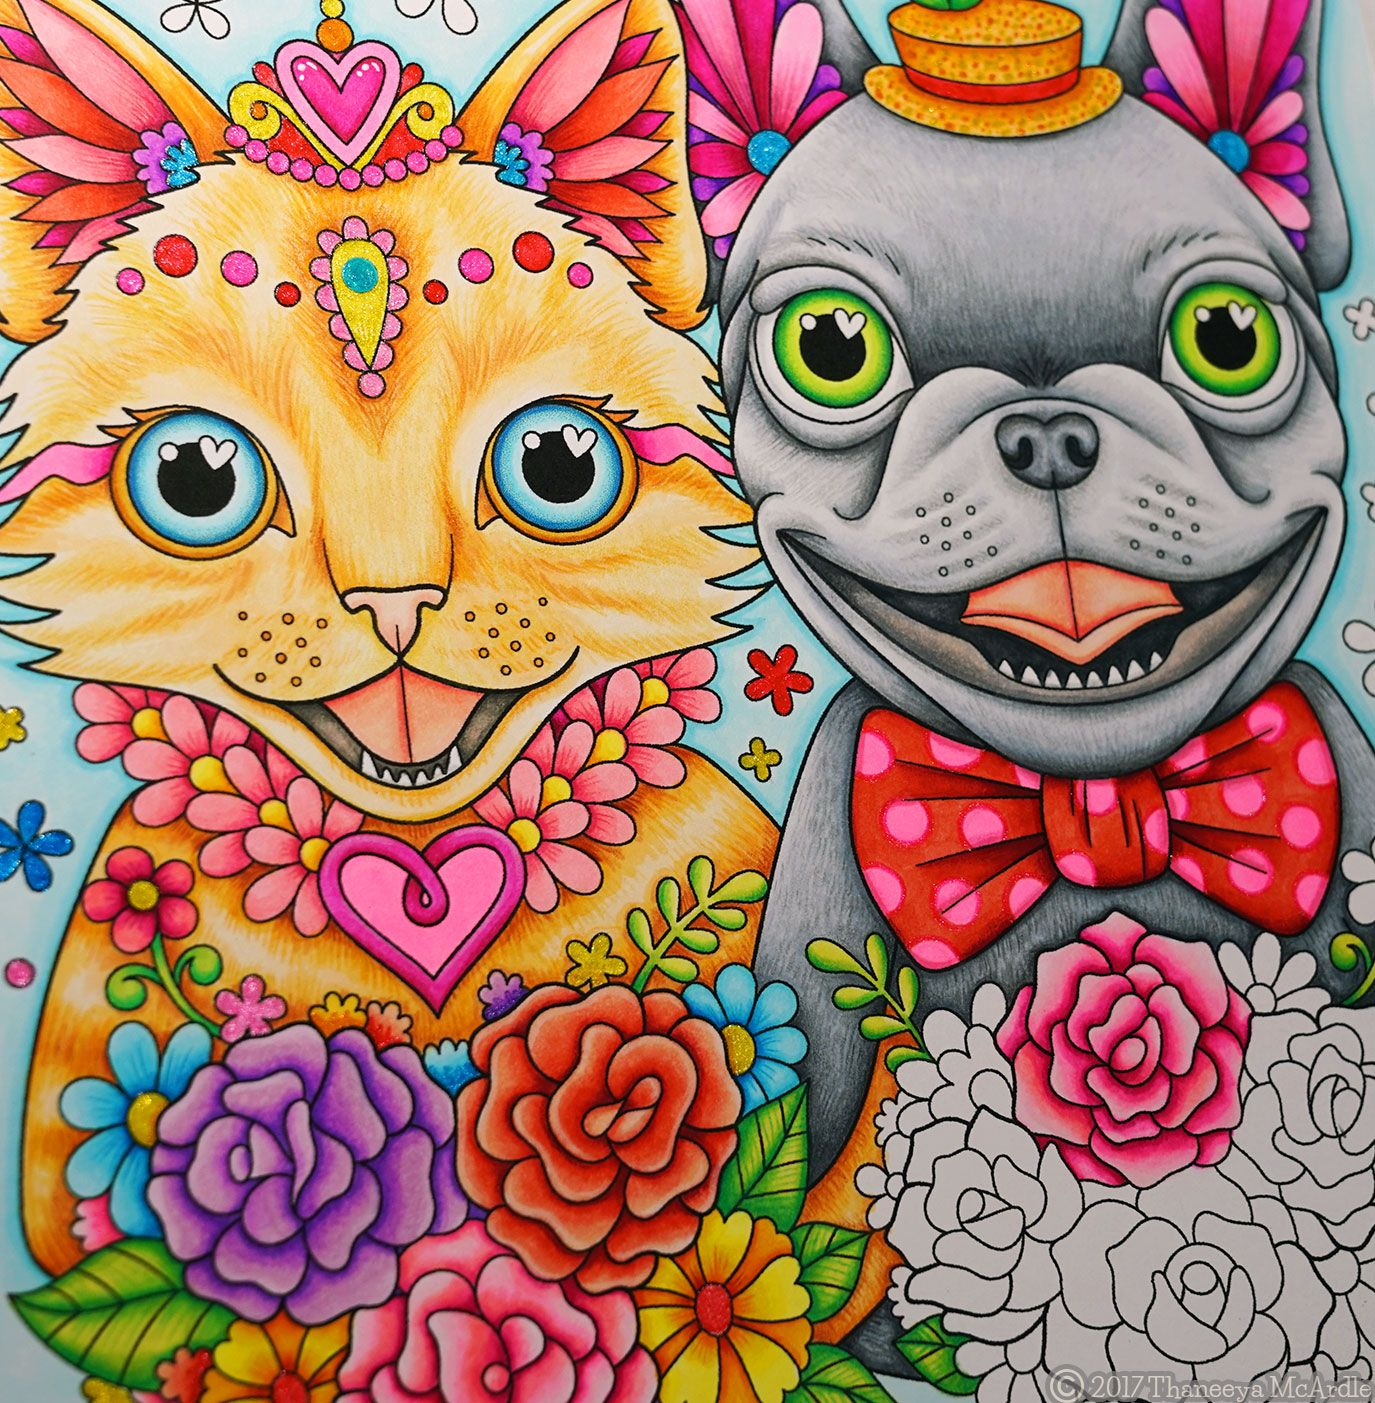 Dog Cat In Love From Thaneeya McArdles Power Of Coloring Book